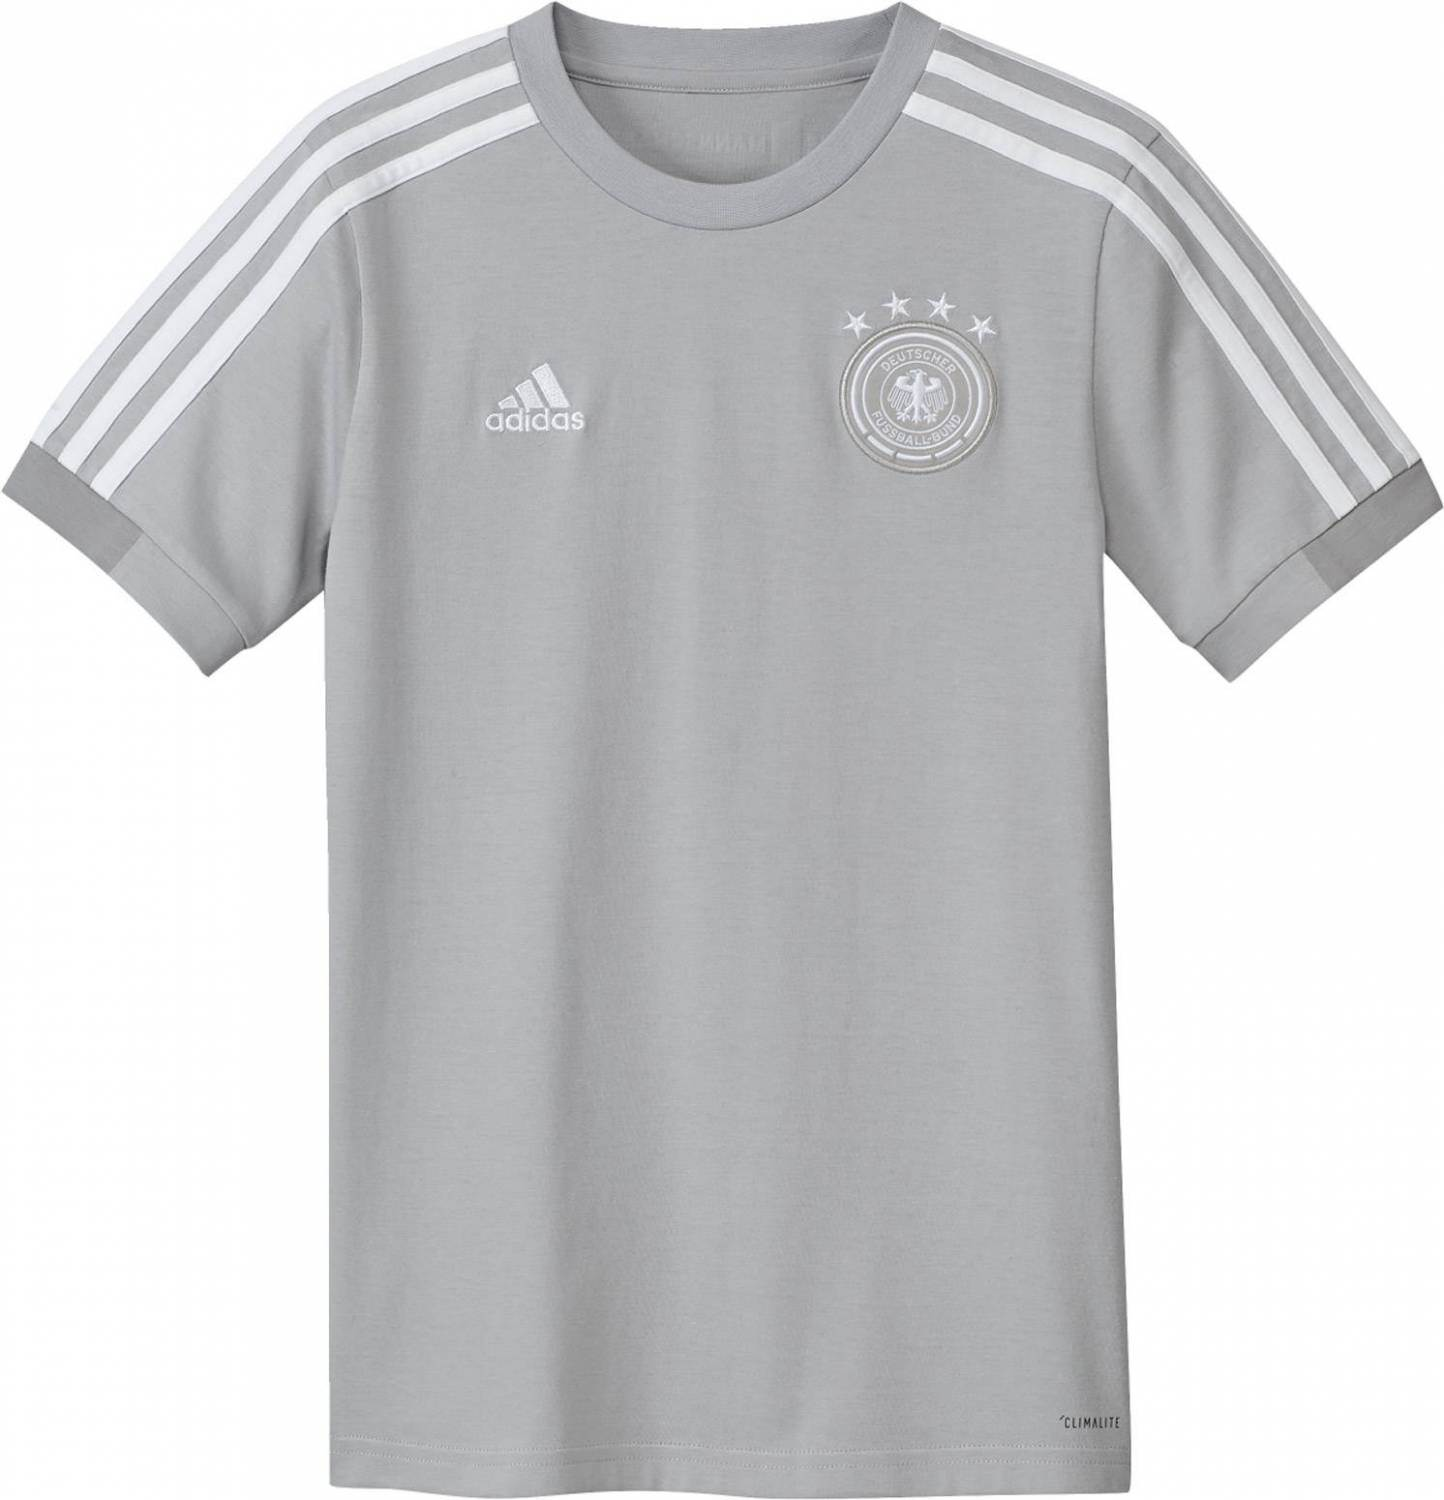 adidas-dfb-trainings-tee-youth-trikot-kids-gr-ouml-szlig-e-152-grey-two-f17-mgh-solid-grey-white